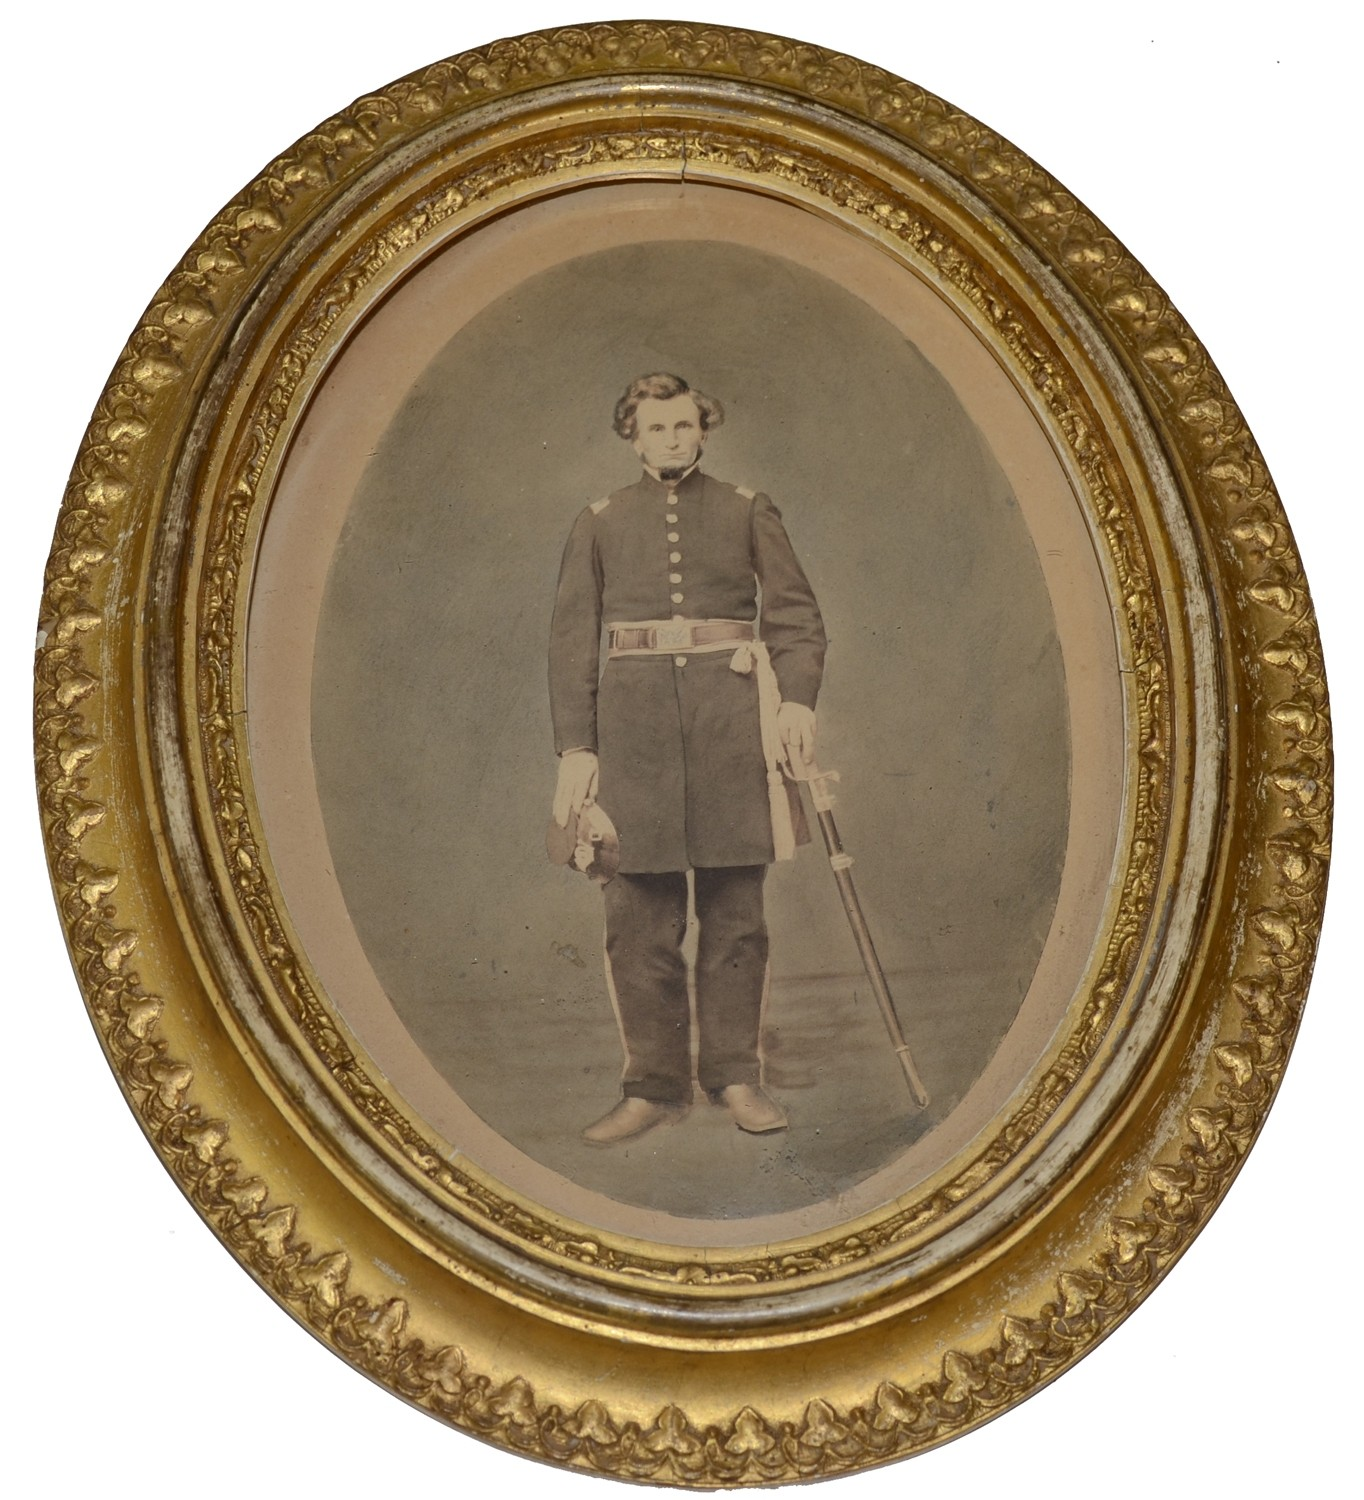 EARLY WAR OVAL FRAMED PHOTO OF INFANTRY LINE OFFICER WITH CAP AND SWORD